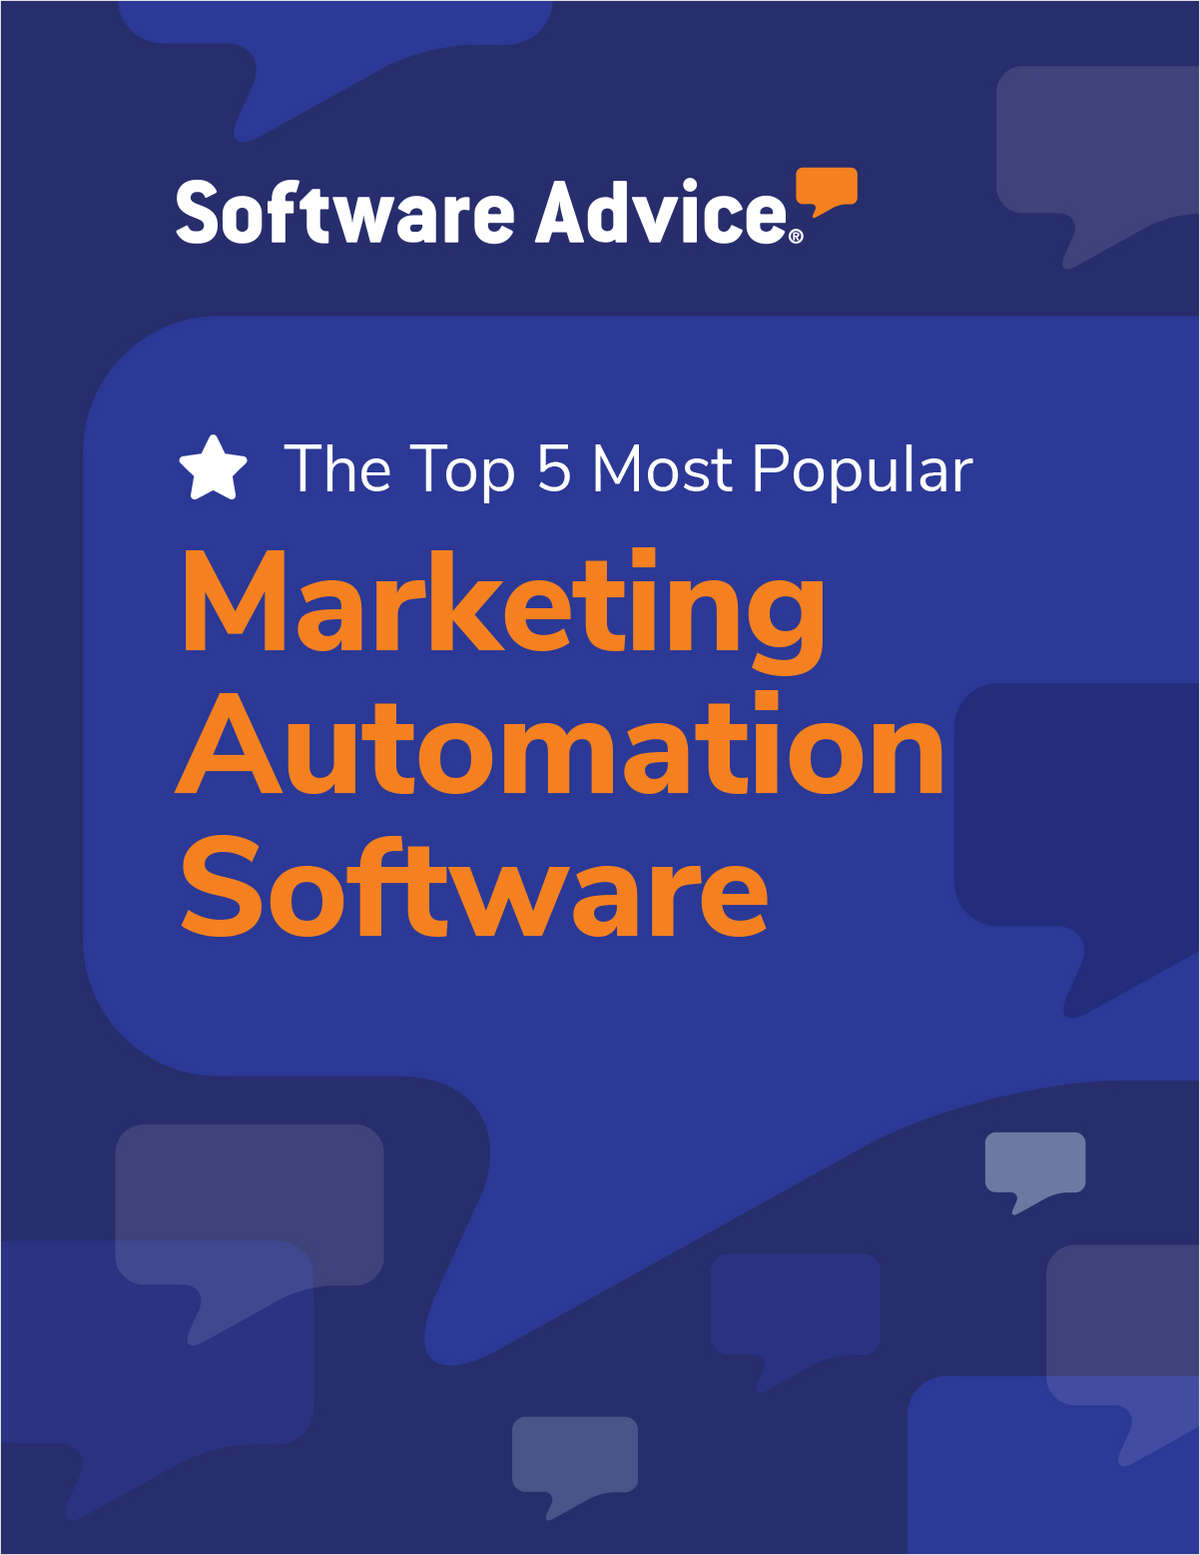 Software Advice's Top 5: Most Popular Marketing Automation Software